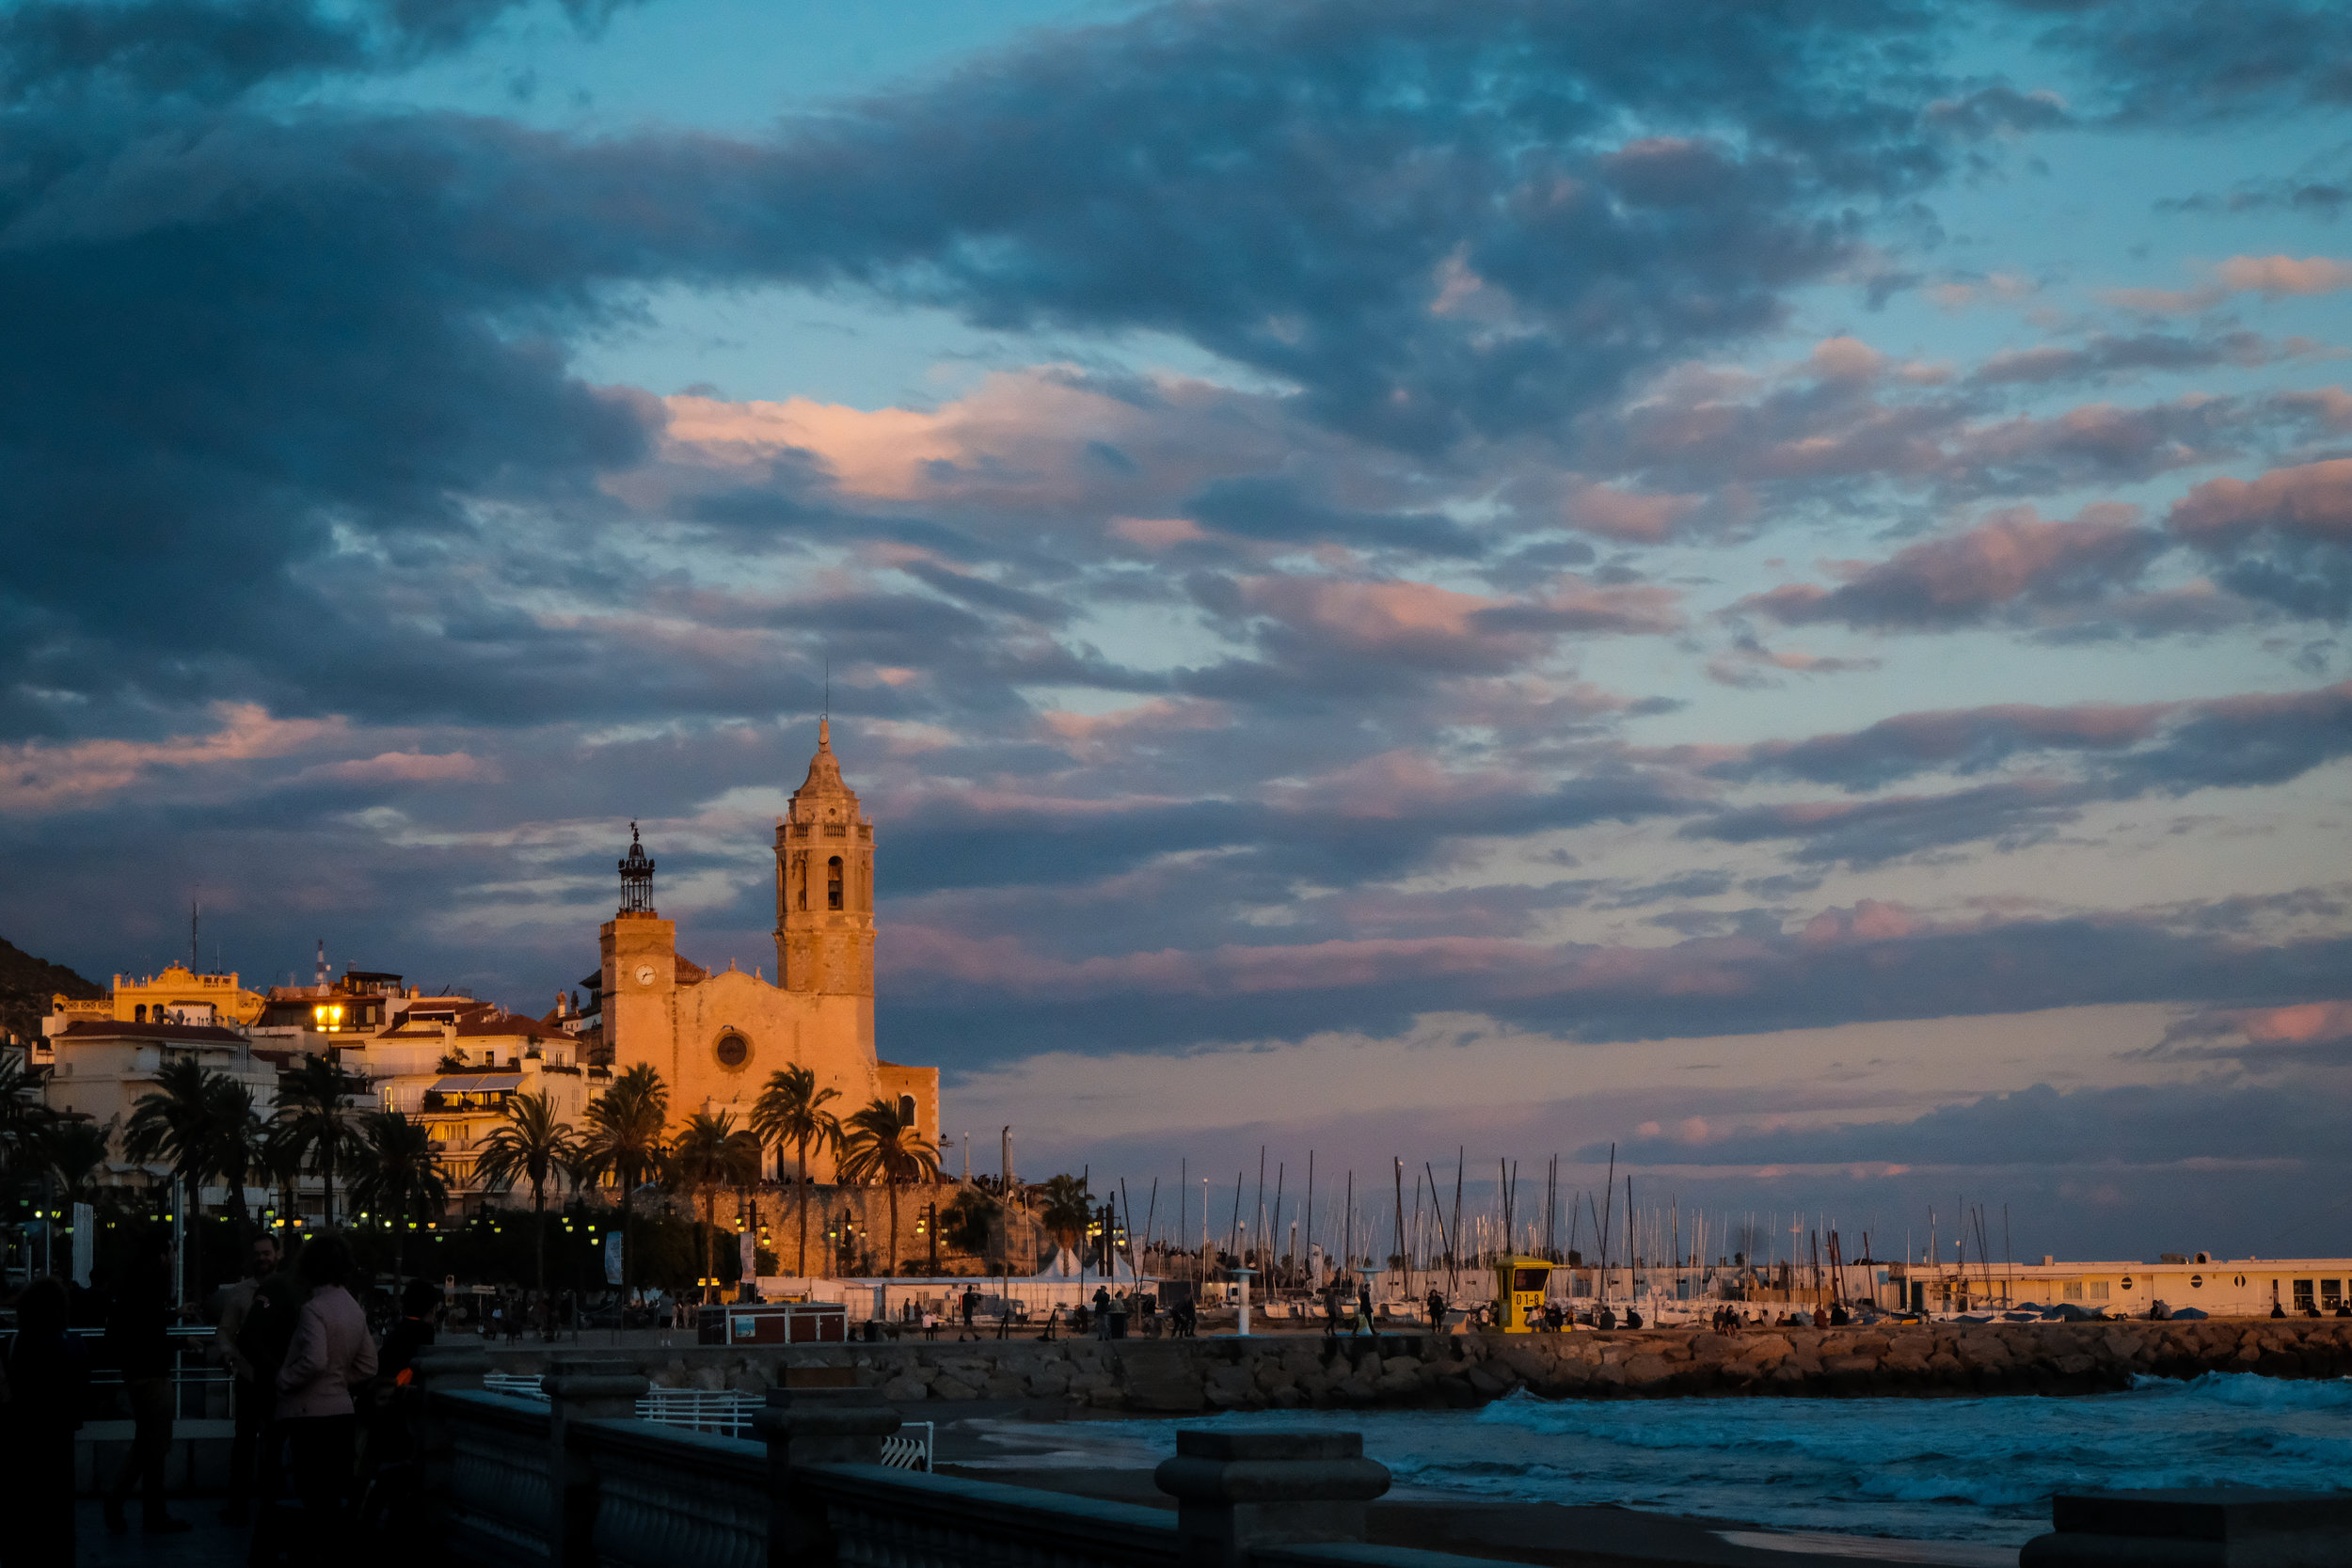 The sunset at Sitges, Catalonia.